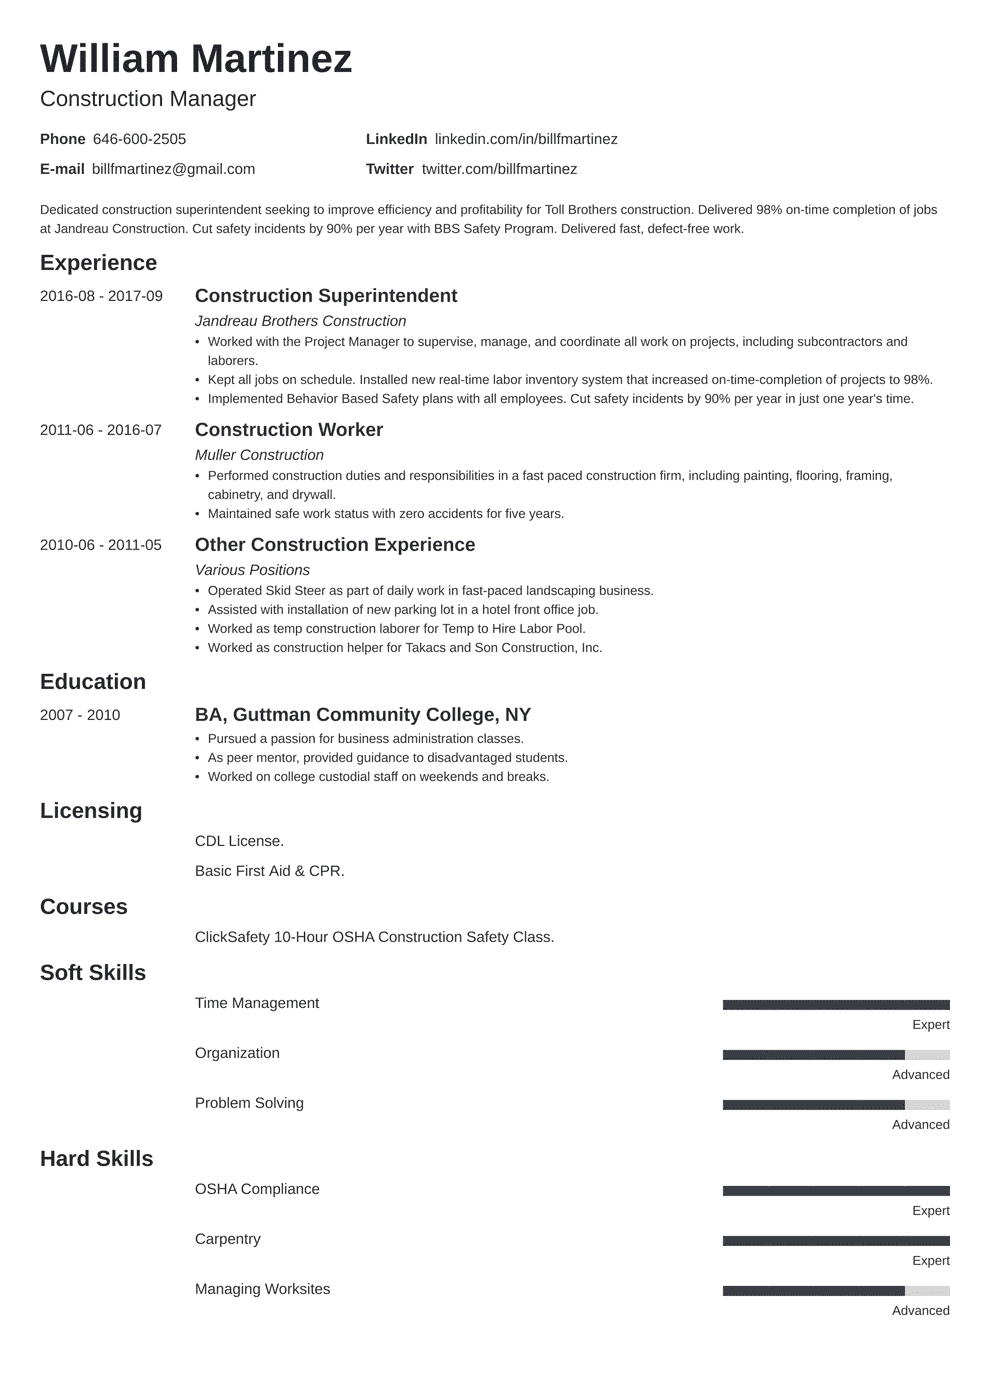 Construction Resume: Sample and Complete Guide [+20 Examples]